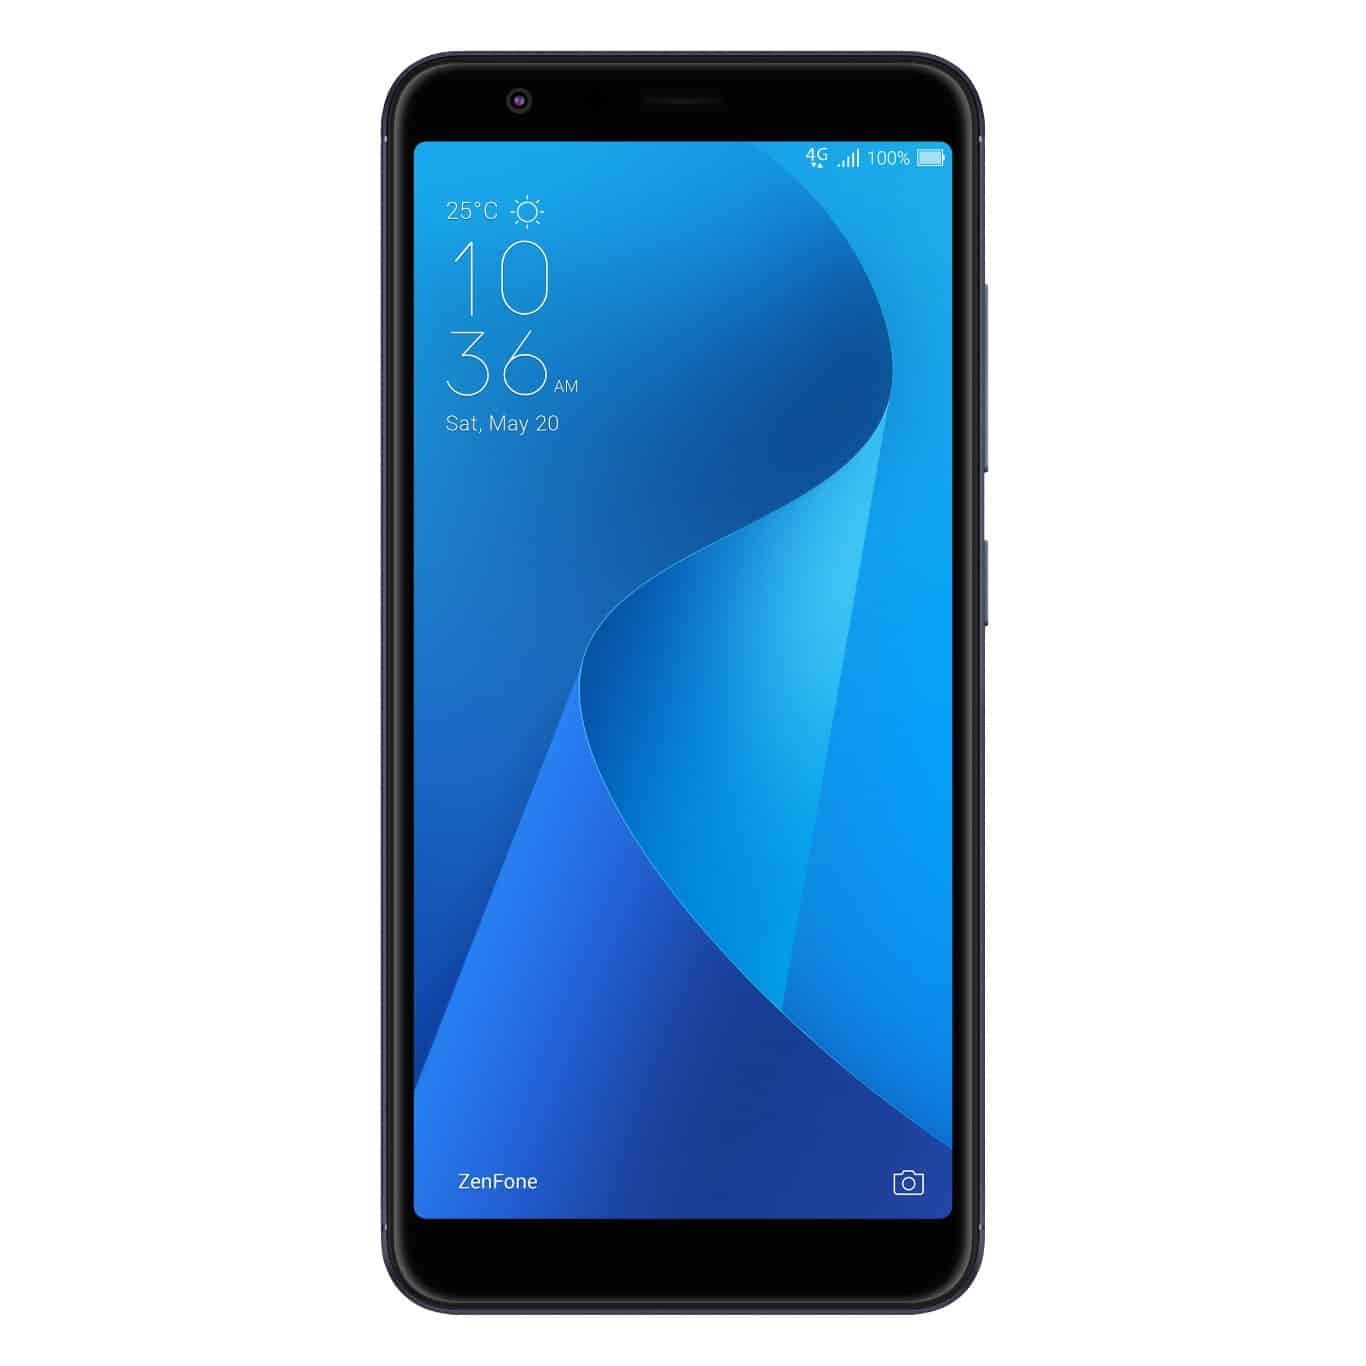 ASUS ZenFone Max Plus M1 official image 3